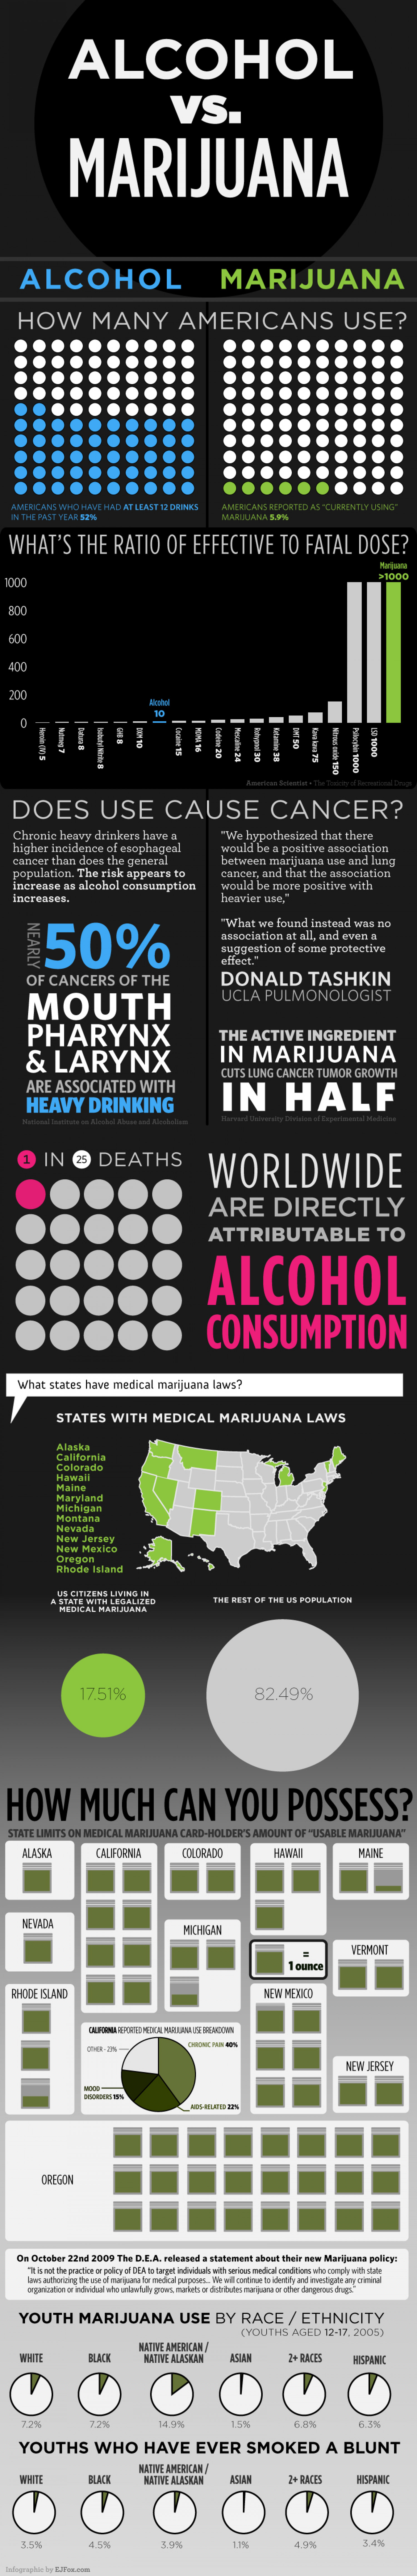 Alcohol vs. Marijuana Infographic